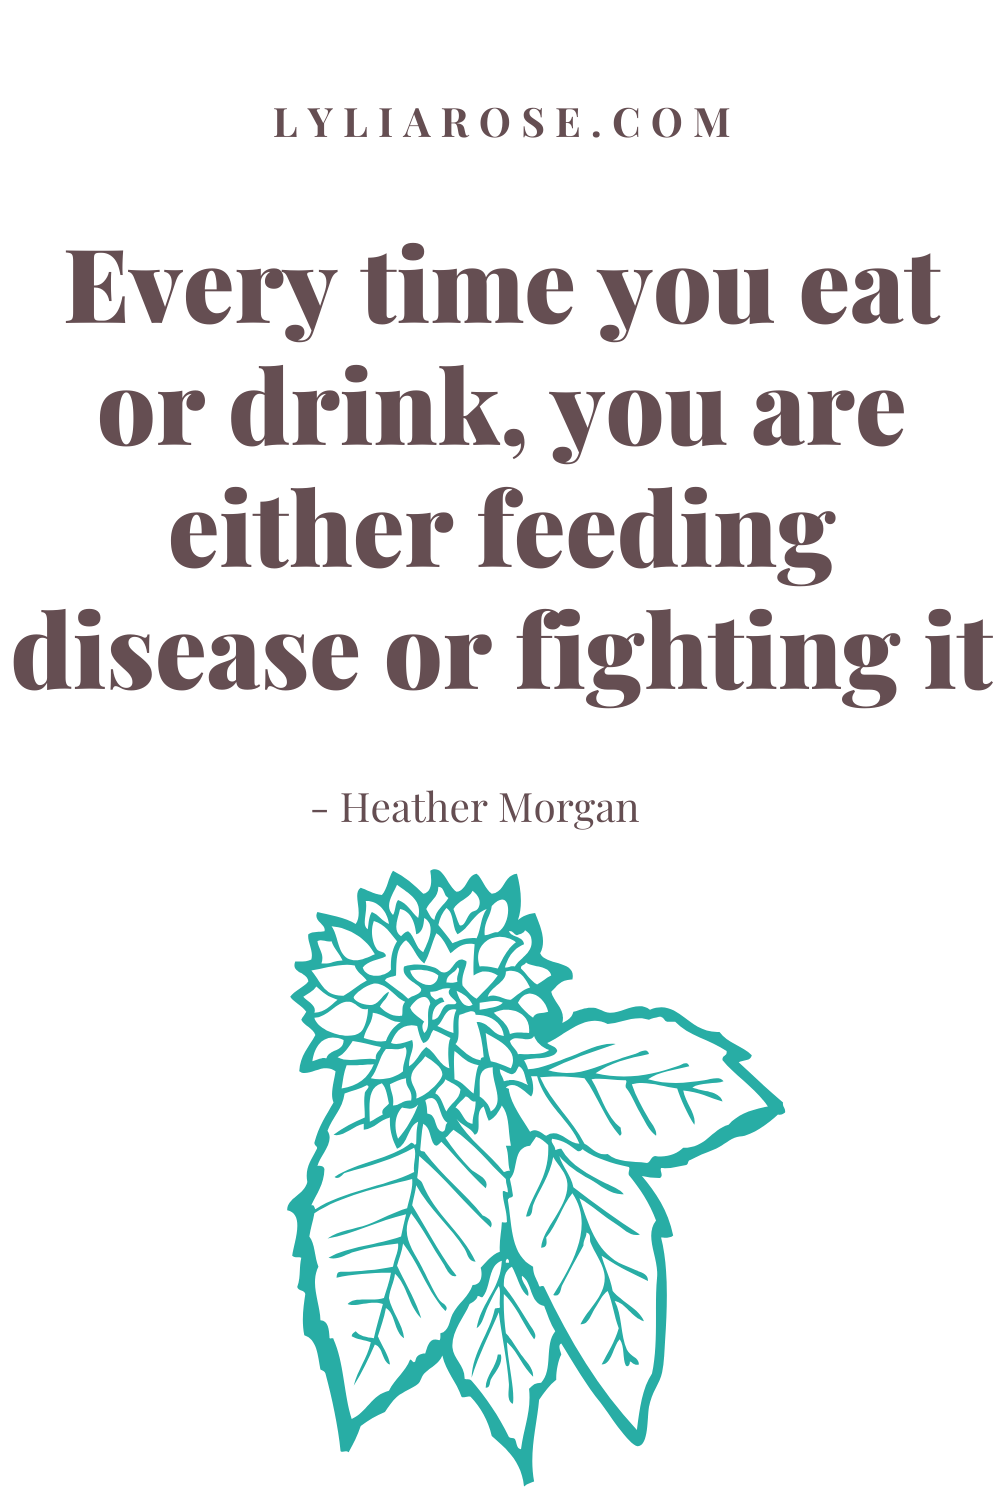 Every time you eat or drink, you are either feeding disease or fighting it